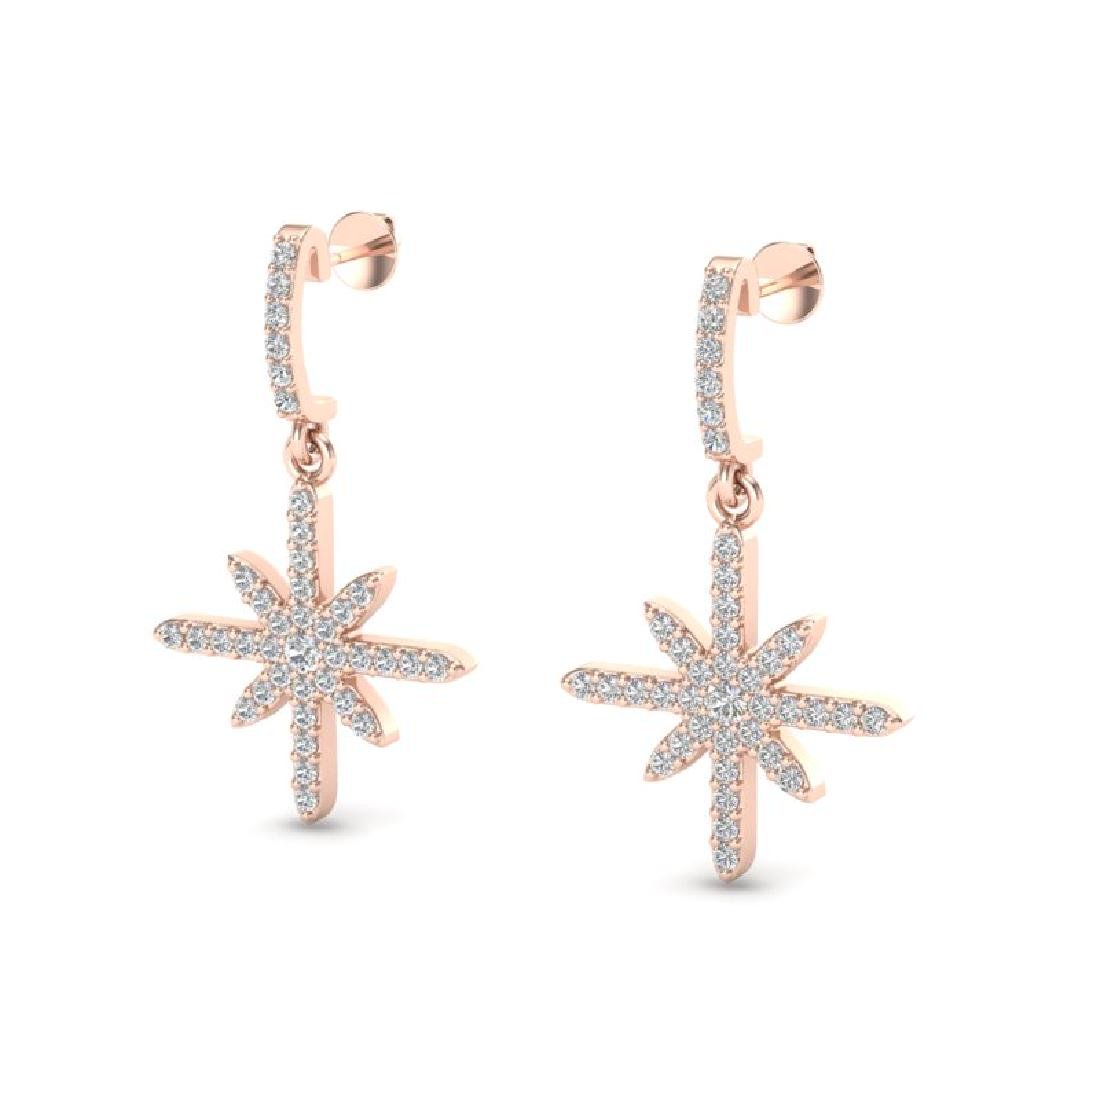 0.75 CTW Micro Pave VS/SI Diamond Earrings 14K Rose